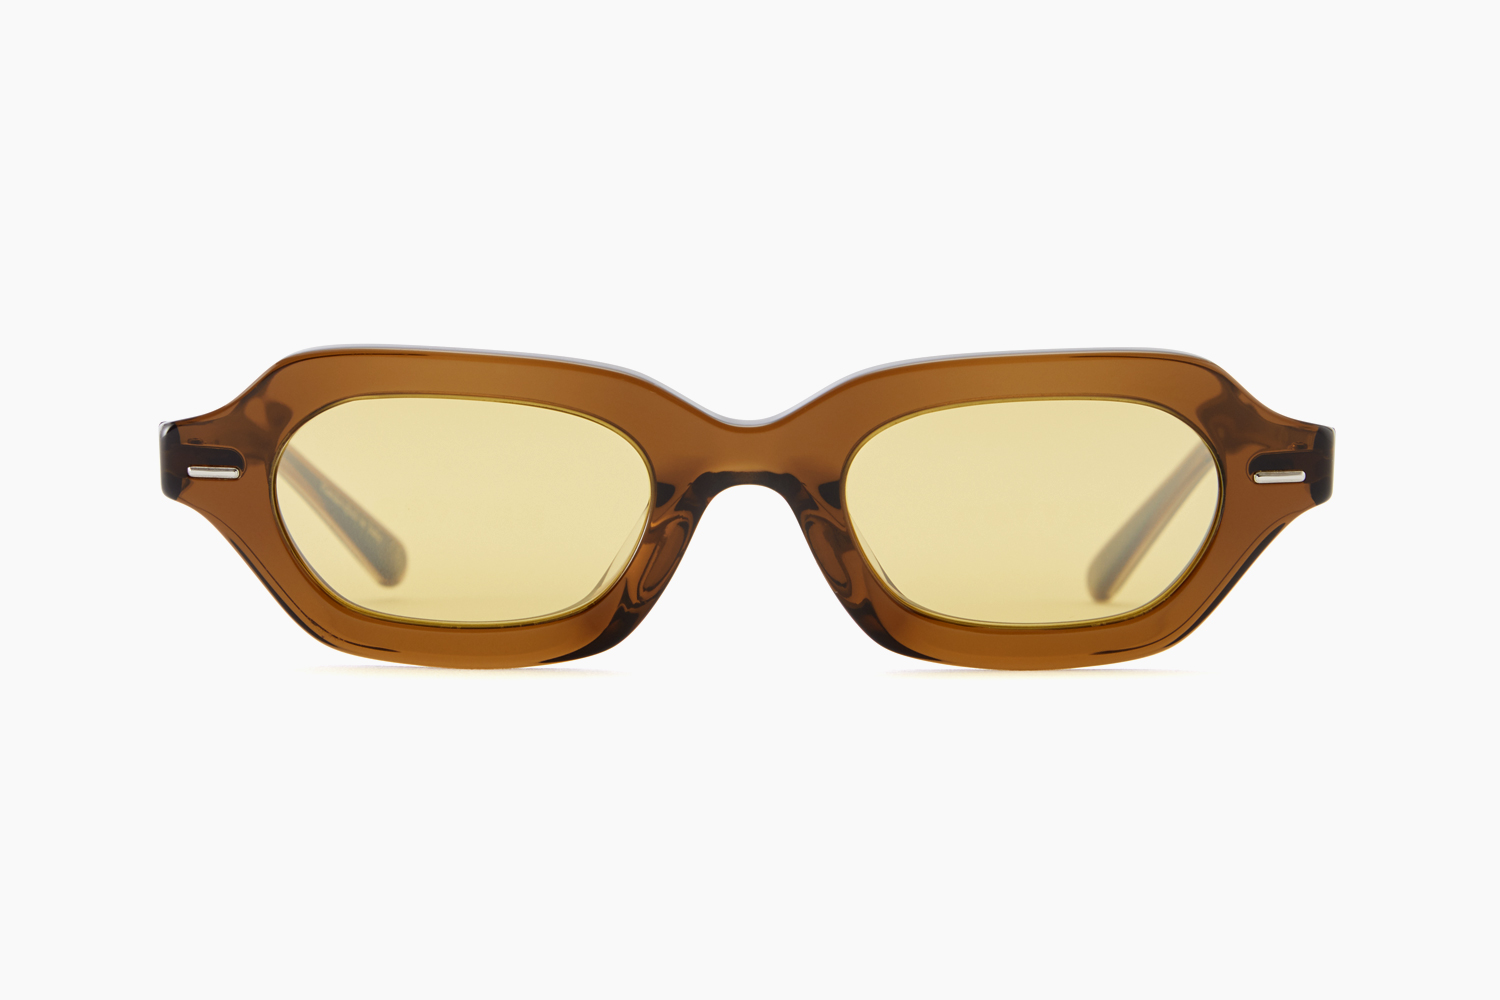 L.A. CC - 16250F|OLIVER PEOPLES